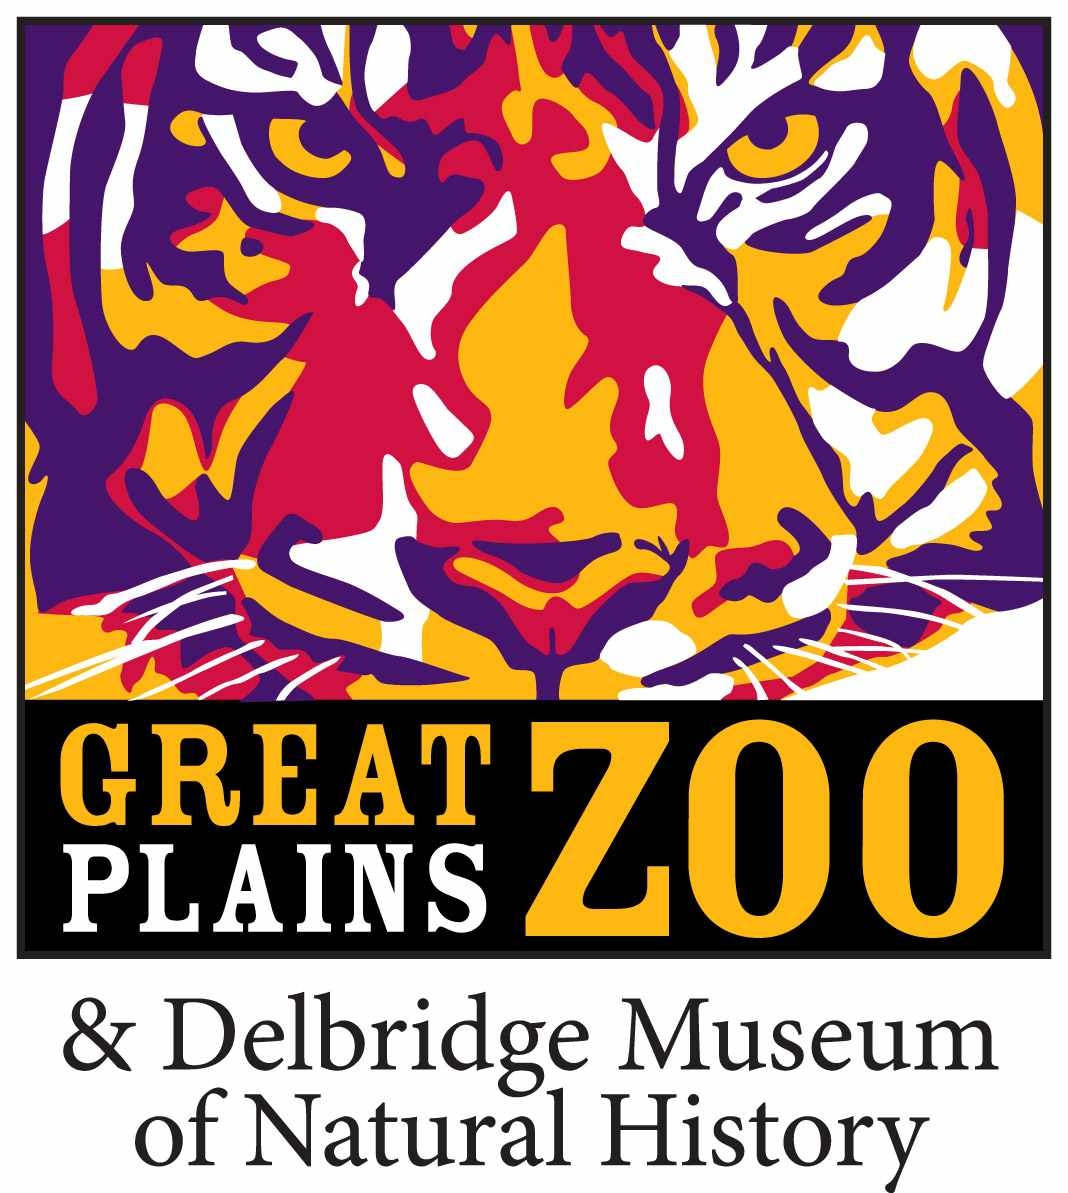 45 Great Plains Zoo.jpg